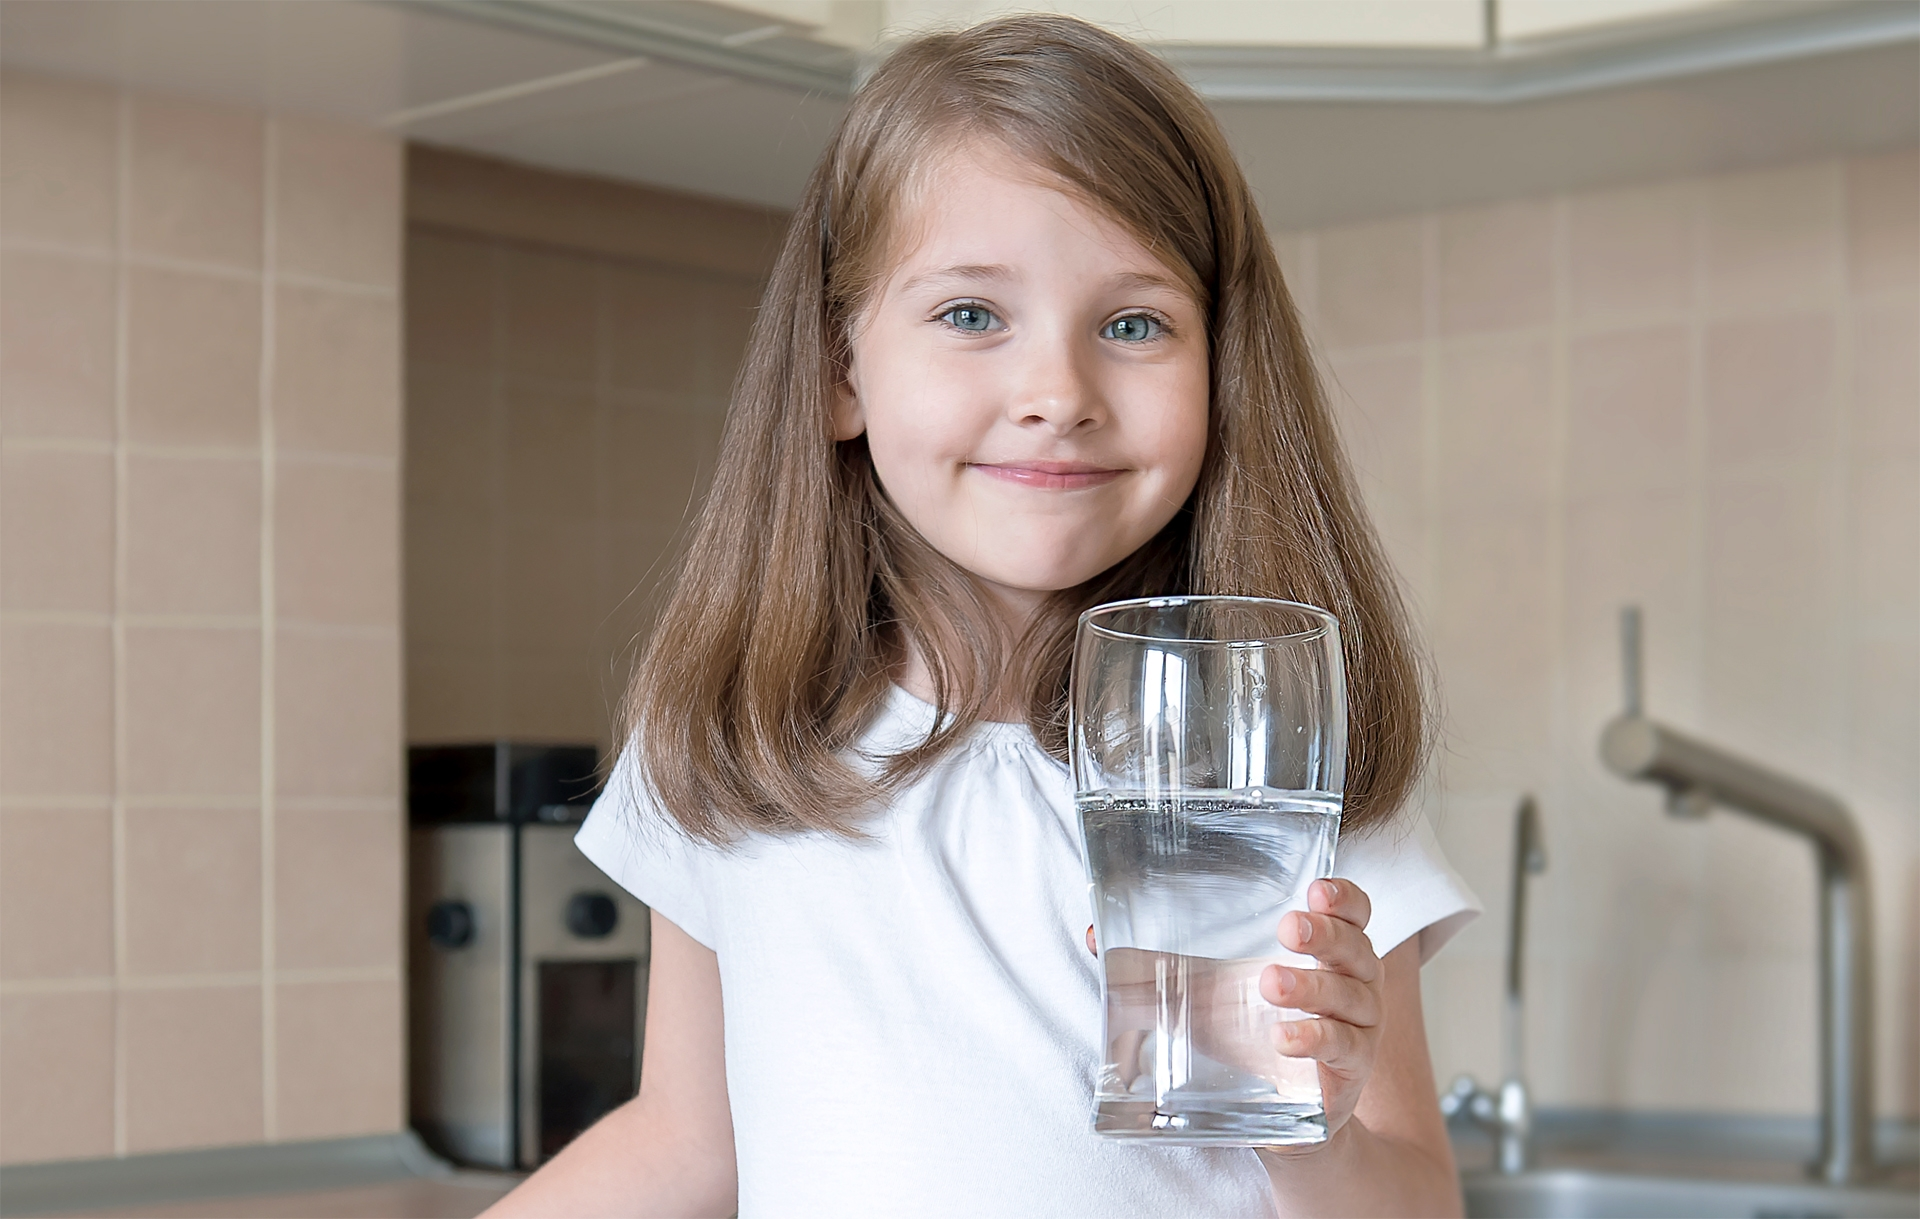 Benefits of drinking fluoridated water